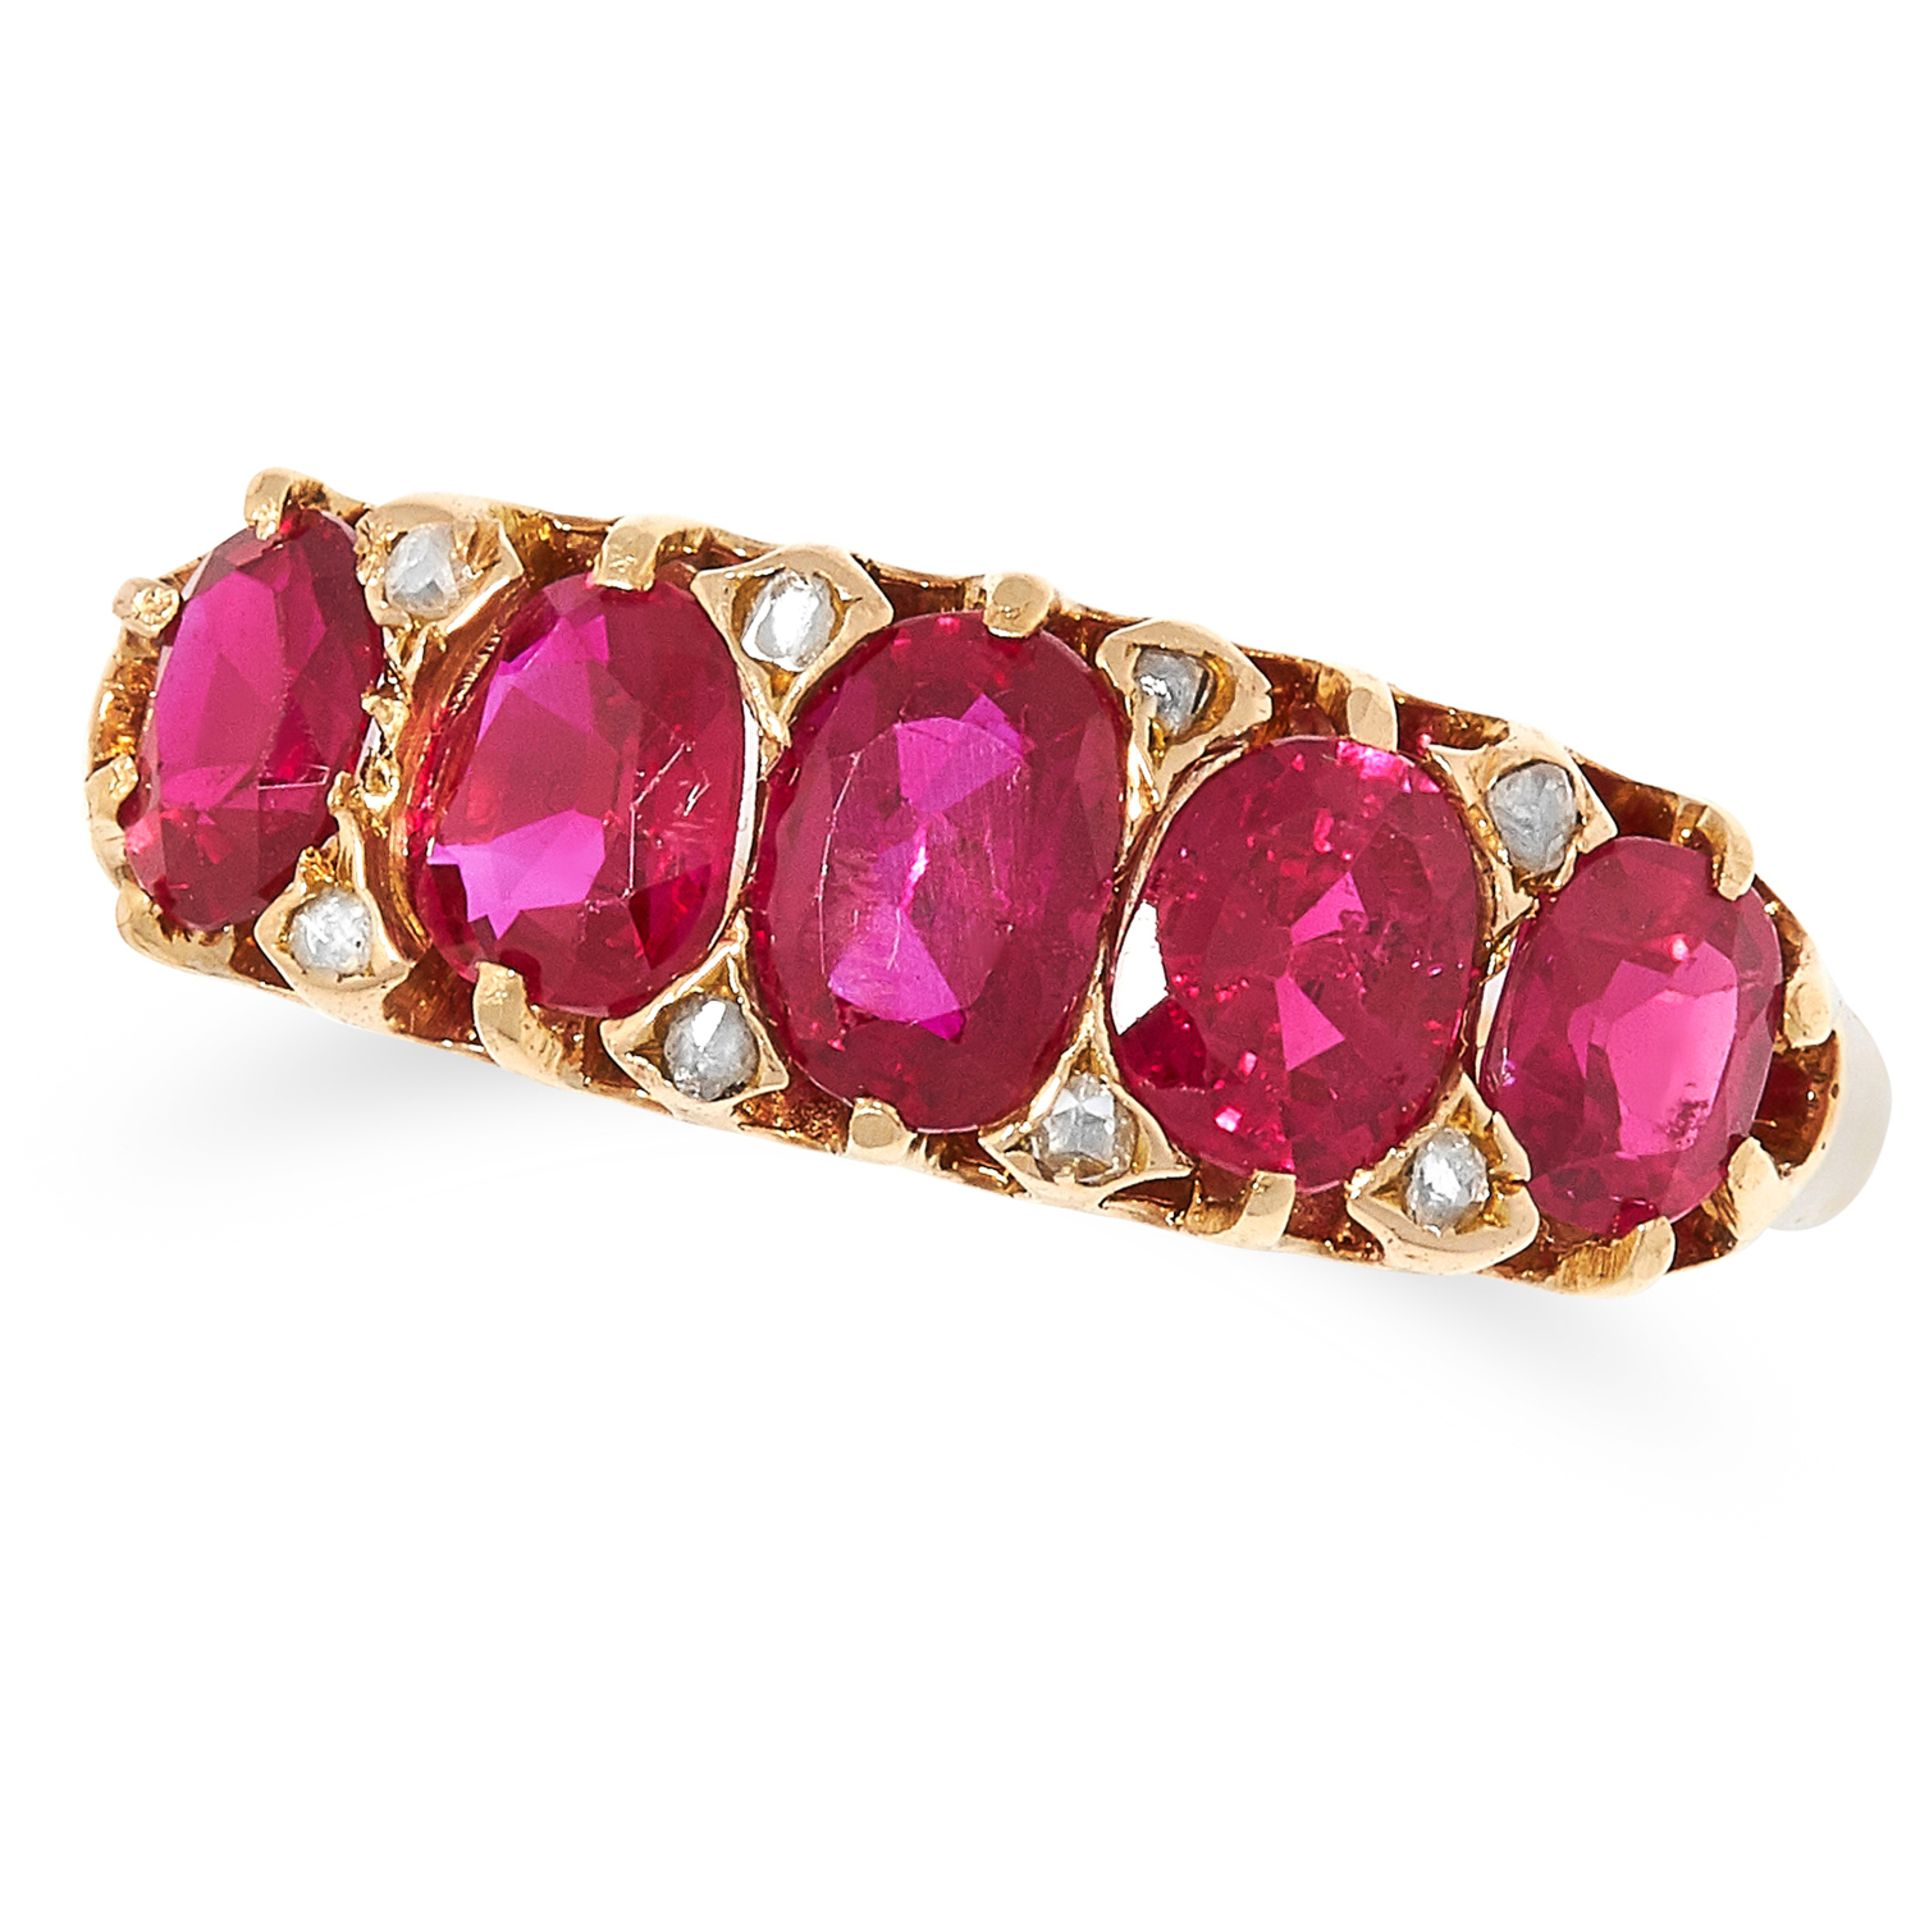 1.59 CARAT BURMA NO HEAT RUBY AND DIAMOND RING set with five oval cut rubies totalling 1.59 carats